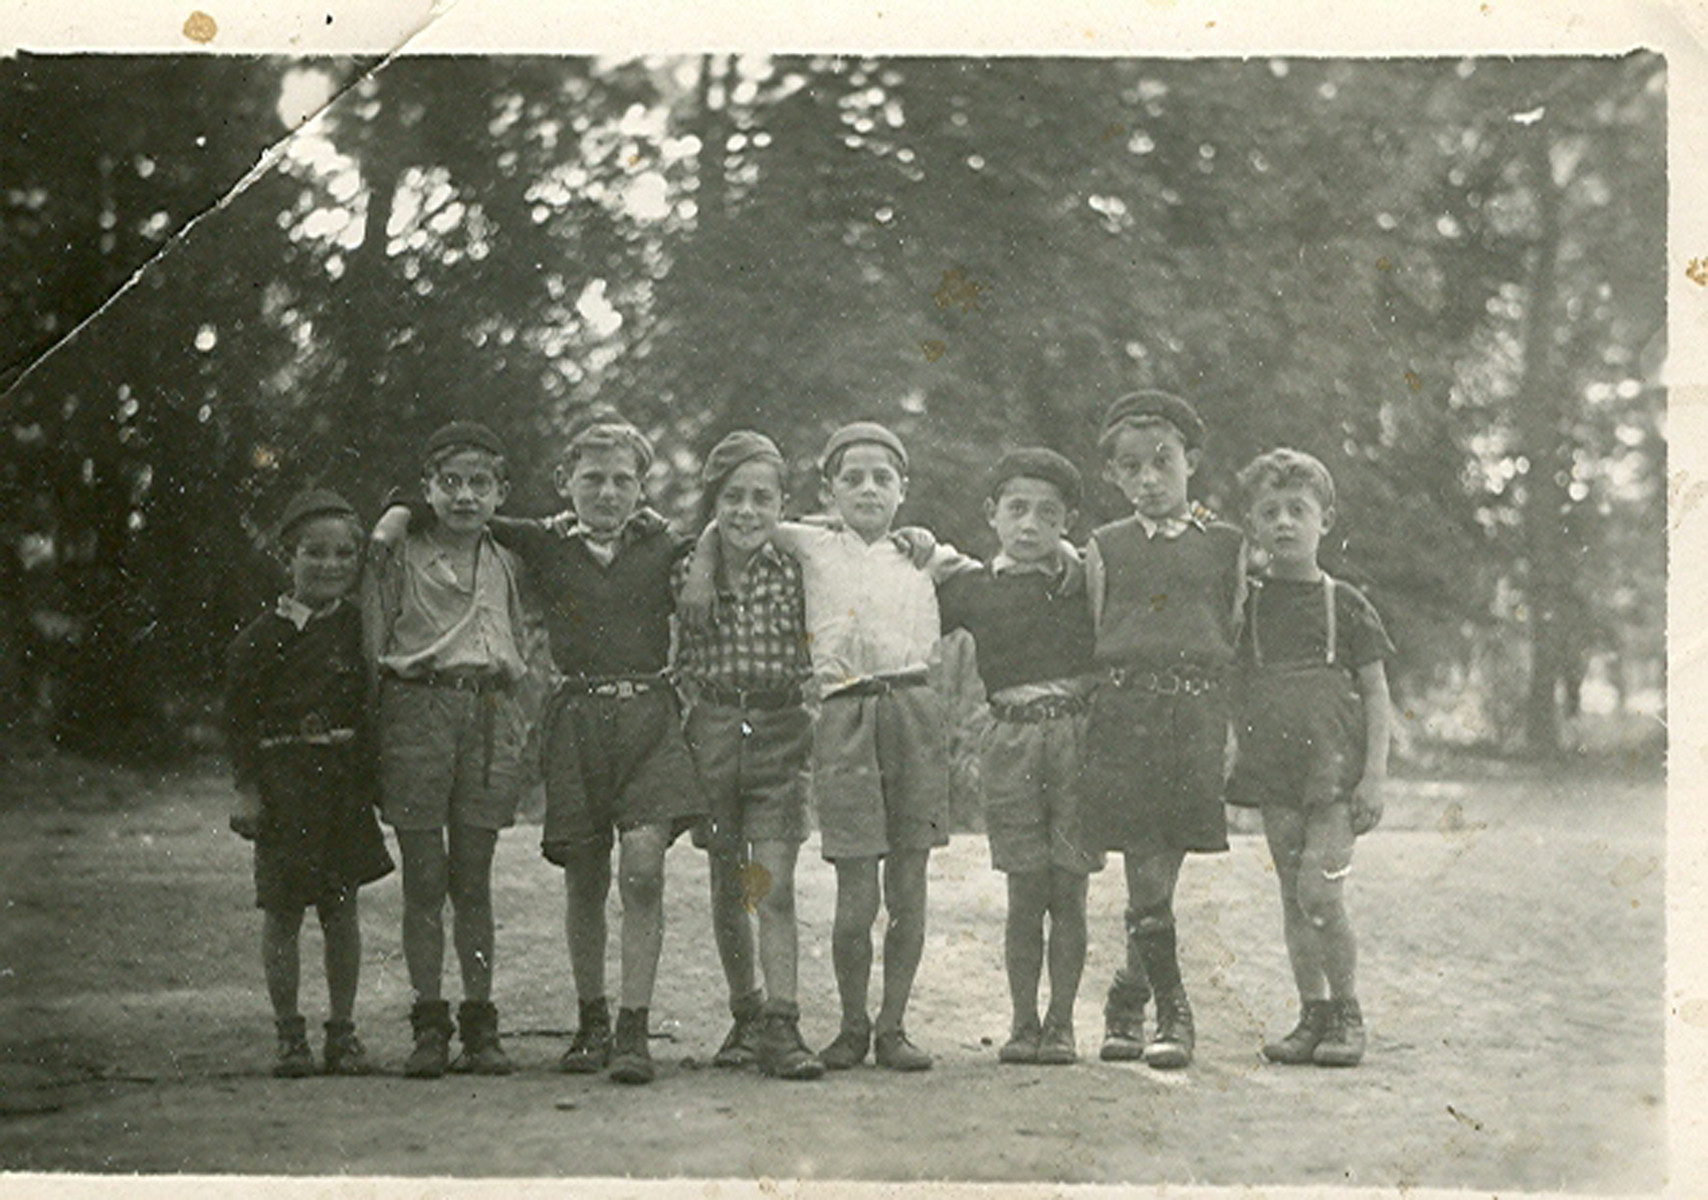 Group portrait of the younger boys in the Versailles children's home.  Rene Goldschmidt is pictured in the center with his friends.